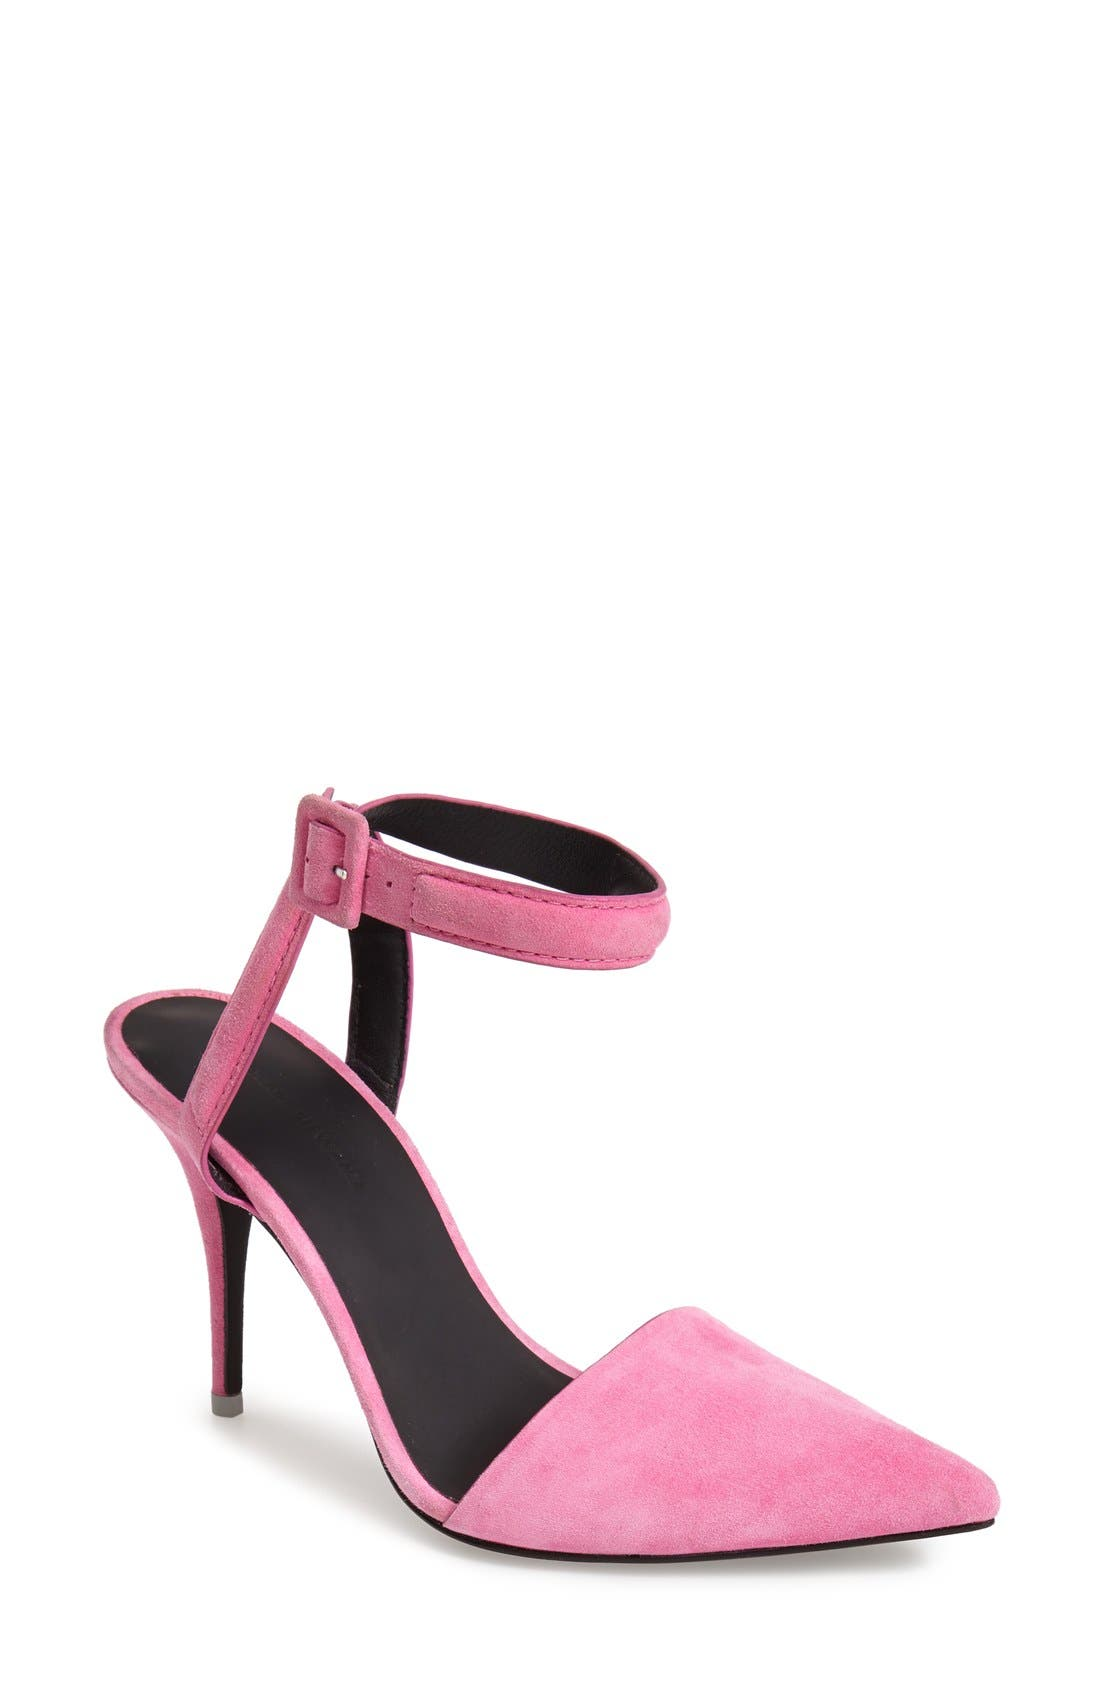 Alternate Image 1 Selected - Alexander Wang 'Lovisa' Ankle Strap Pump (Women)